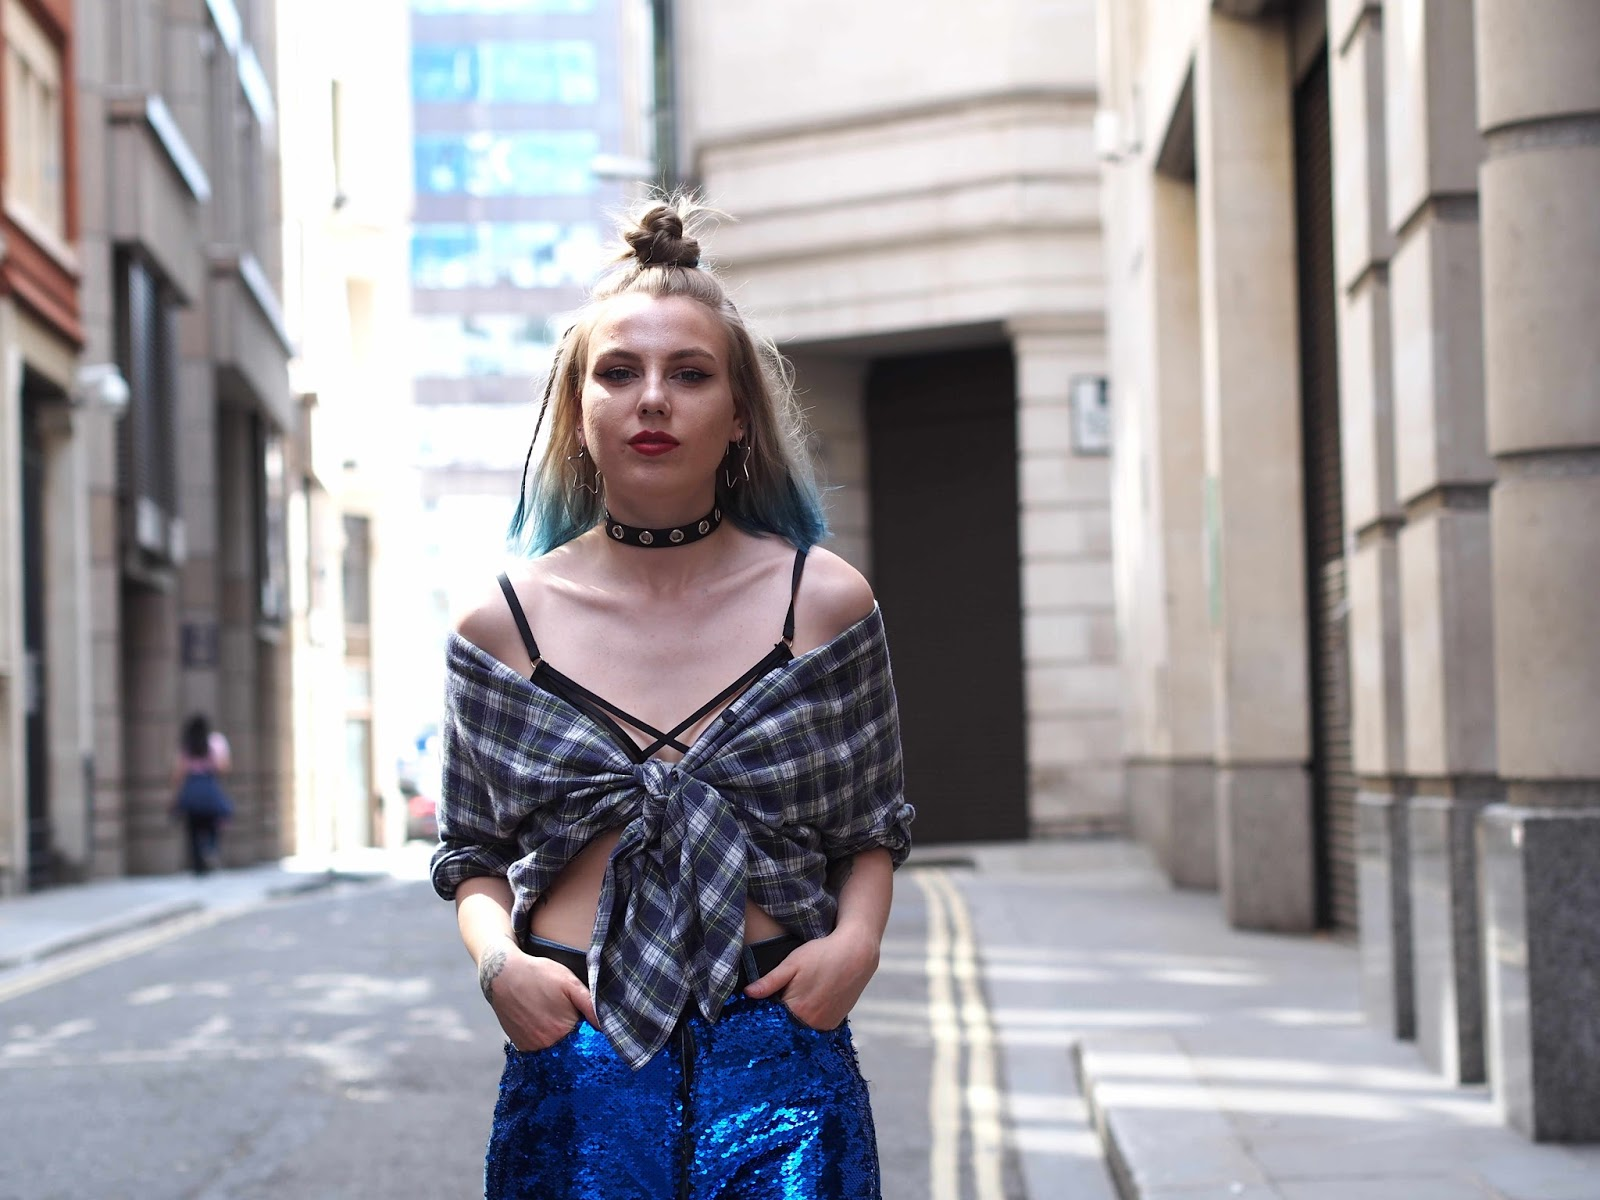 ripped sequin jeans, sequin mom jeans, summer outfits, fishnets under ripped jeans, grunge outfit ideas, grunge outfits, ripped mom jeans, plaid flannel shirt